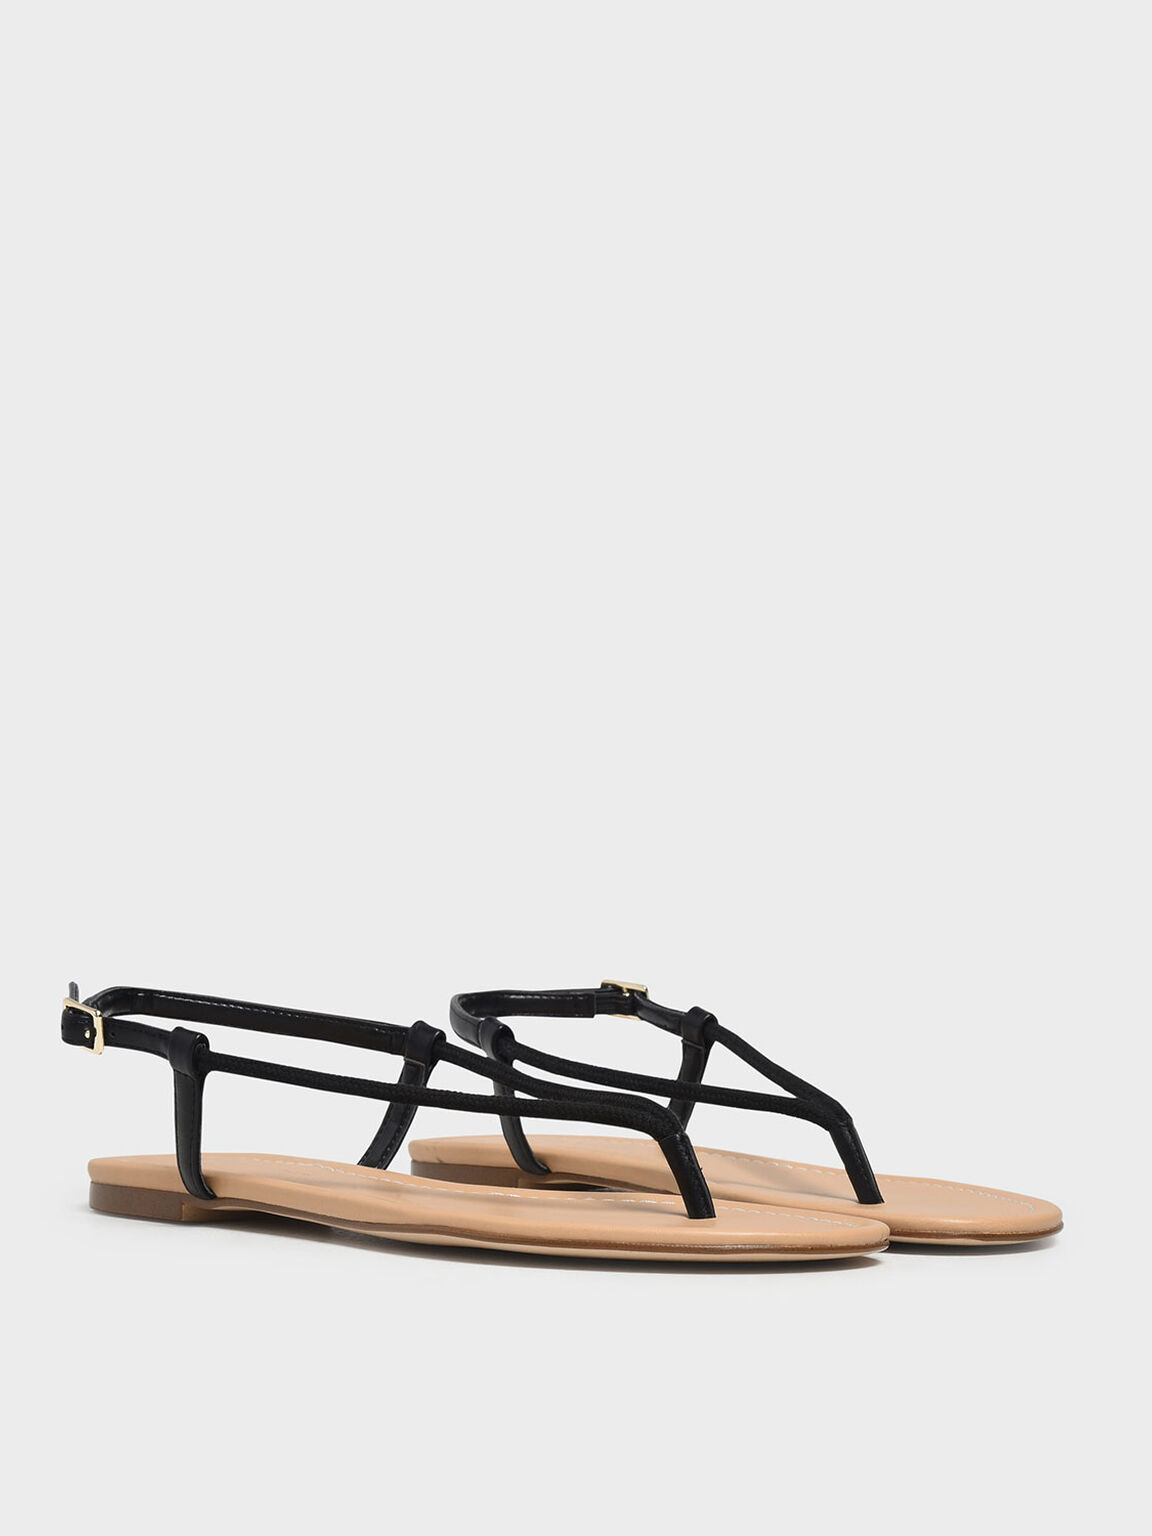 Classic Thong Sandals, Black, hi-res